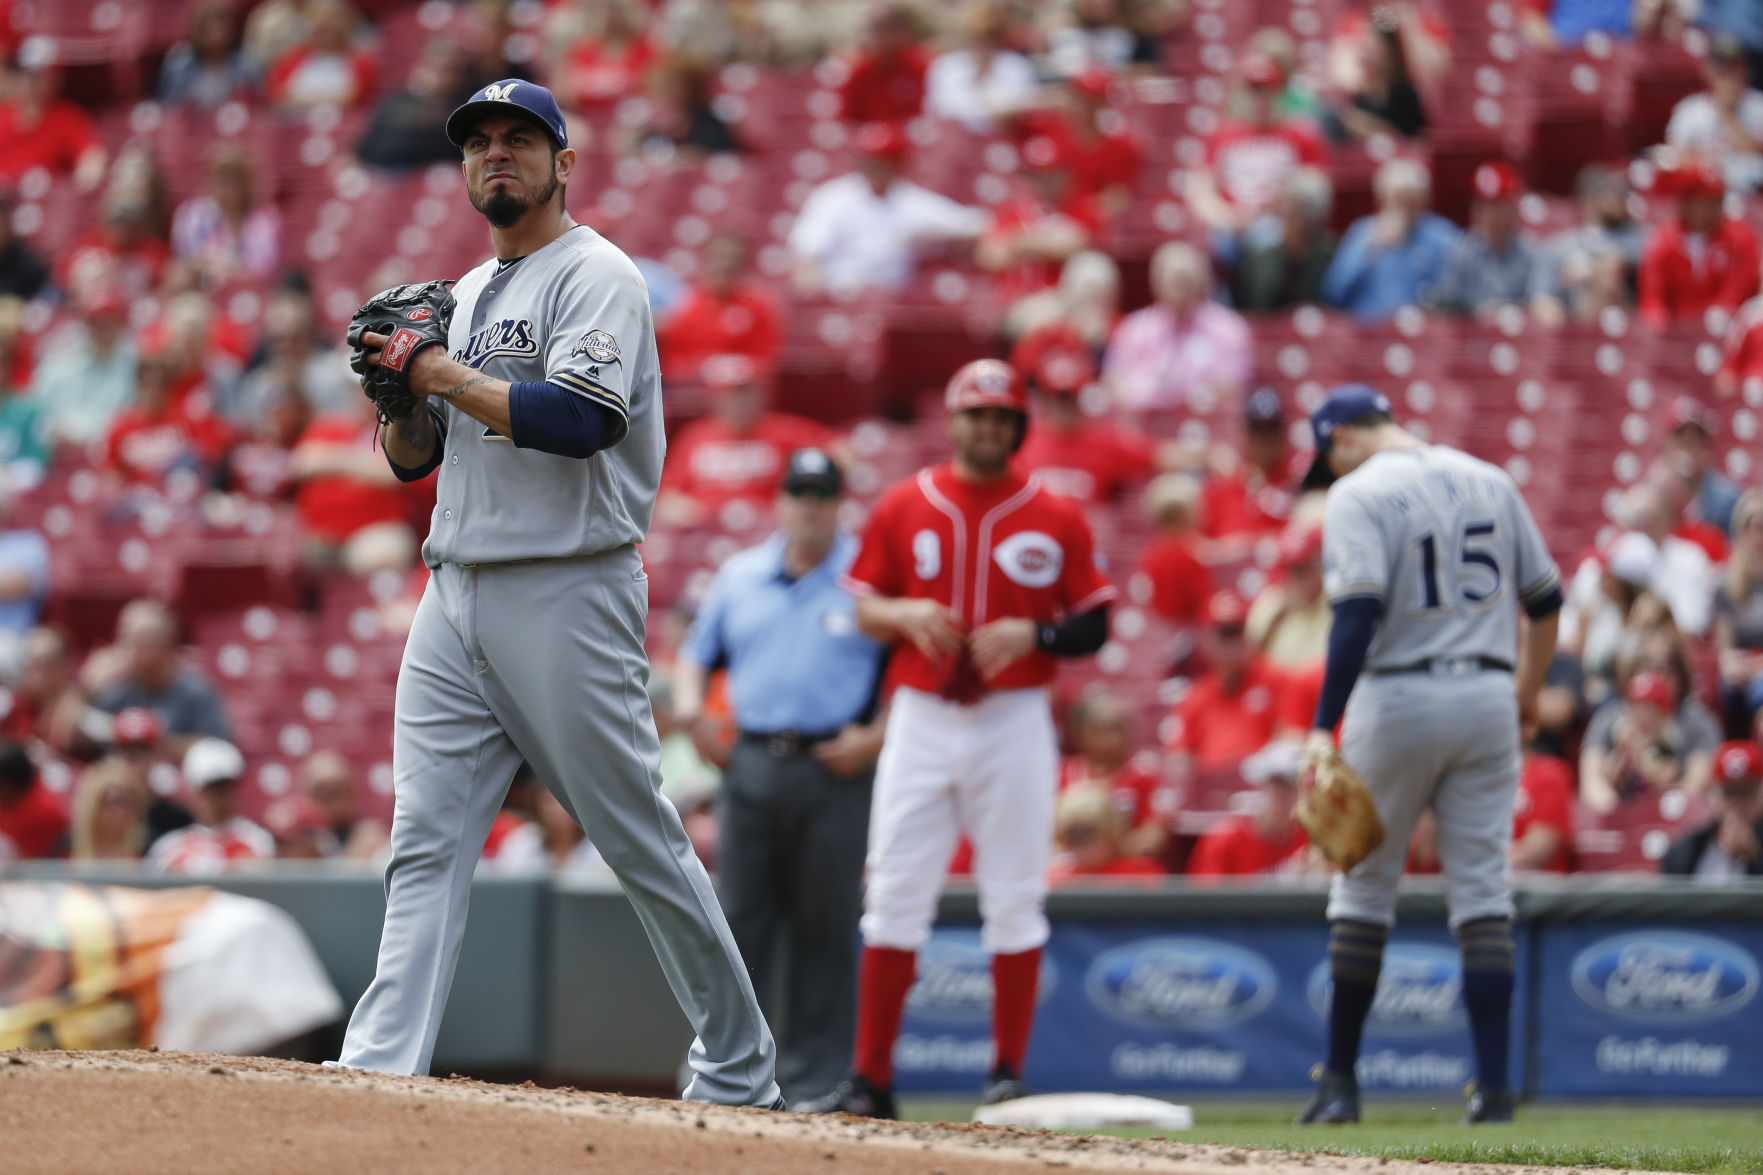 Cincinnati homer means walk-off win against Milwaukee Brewers